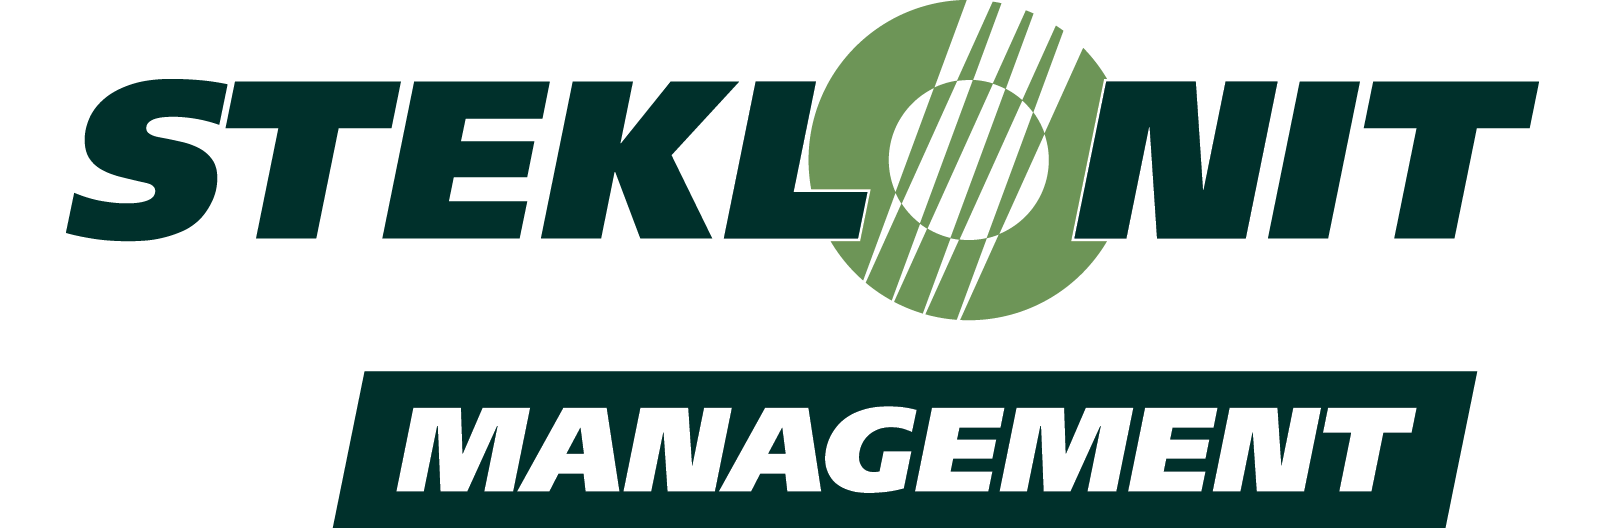 Steklonit Management